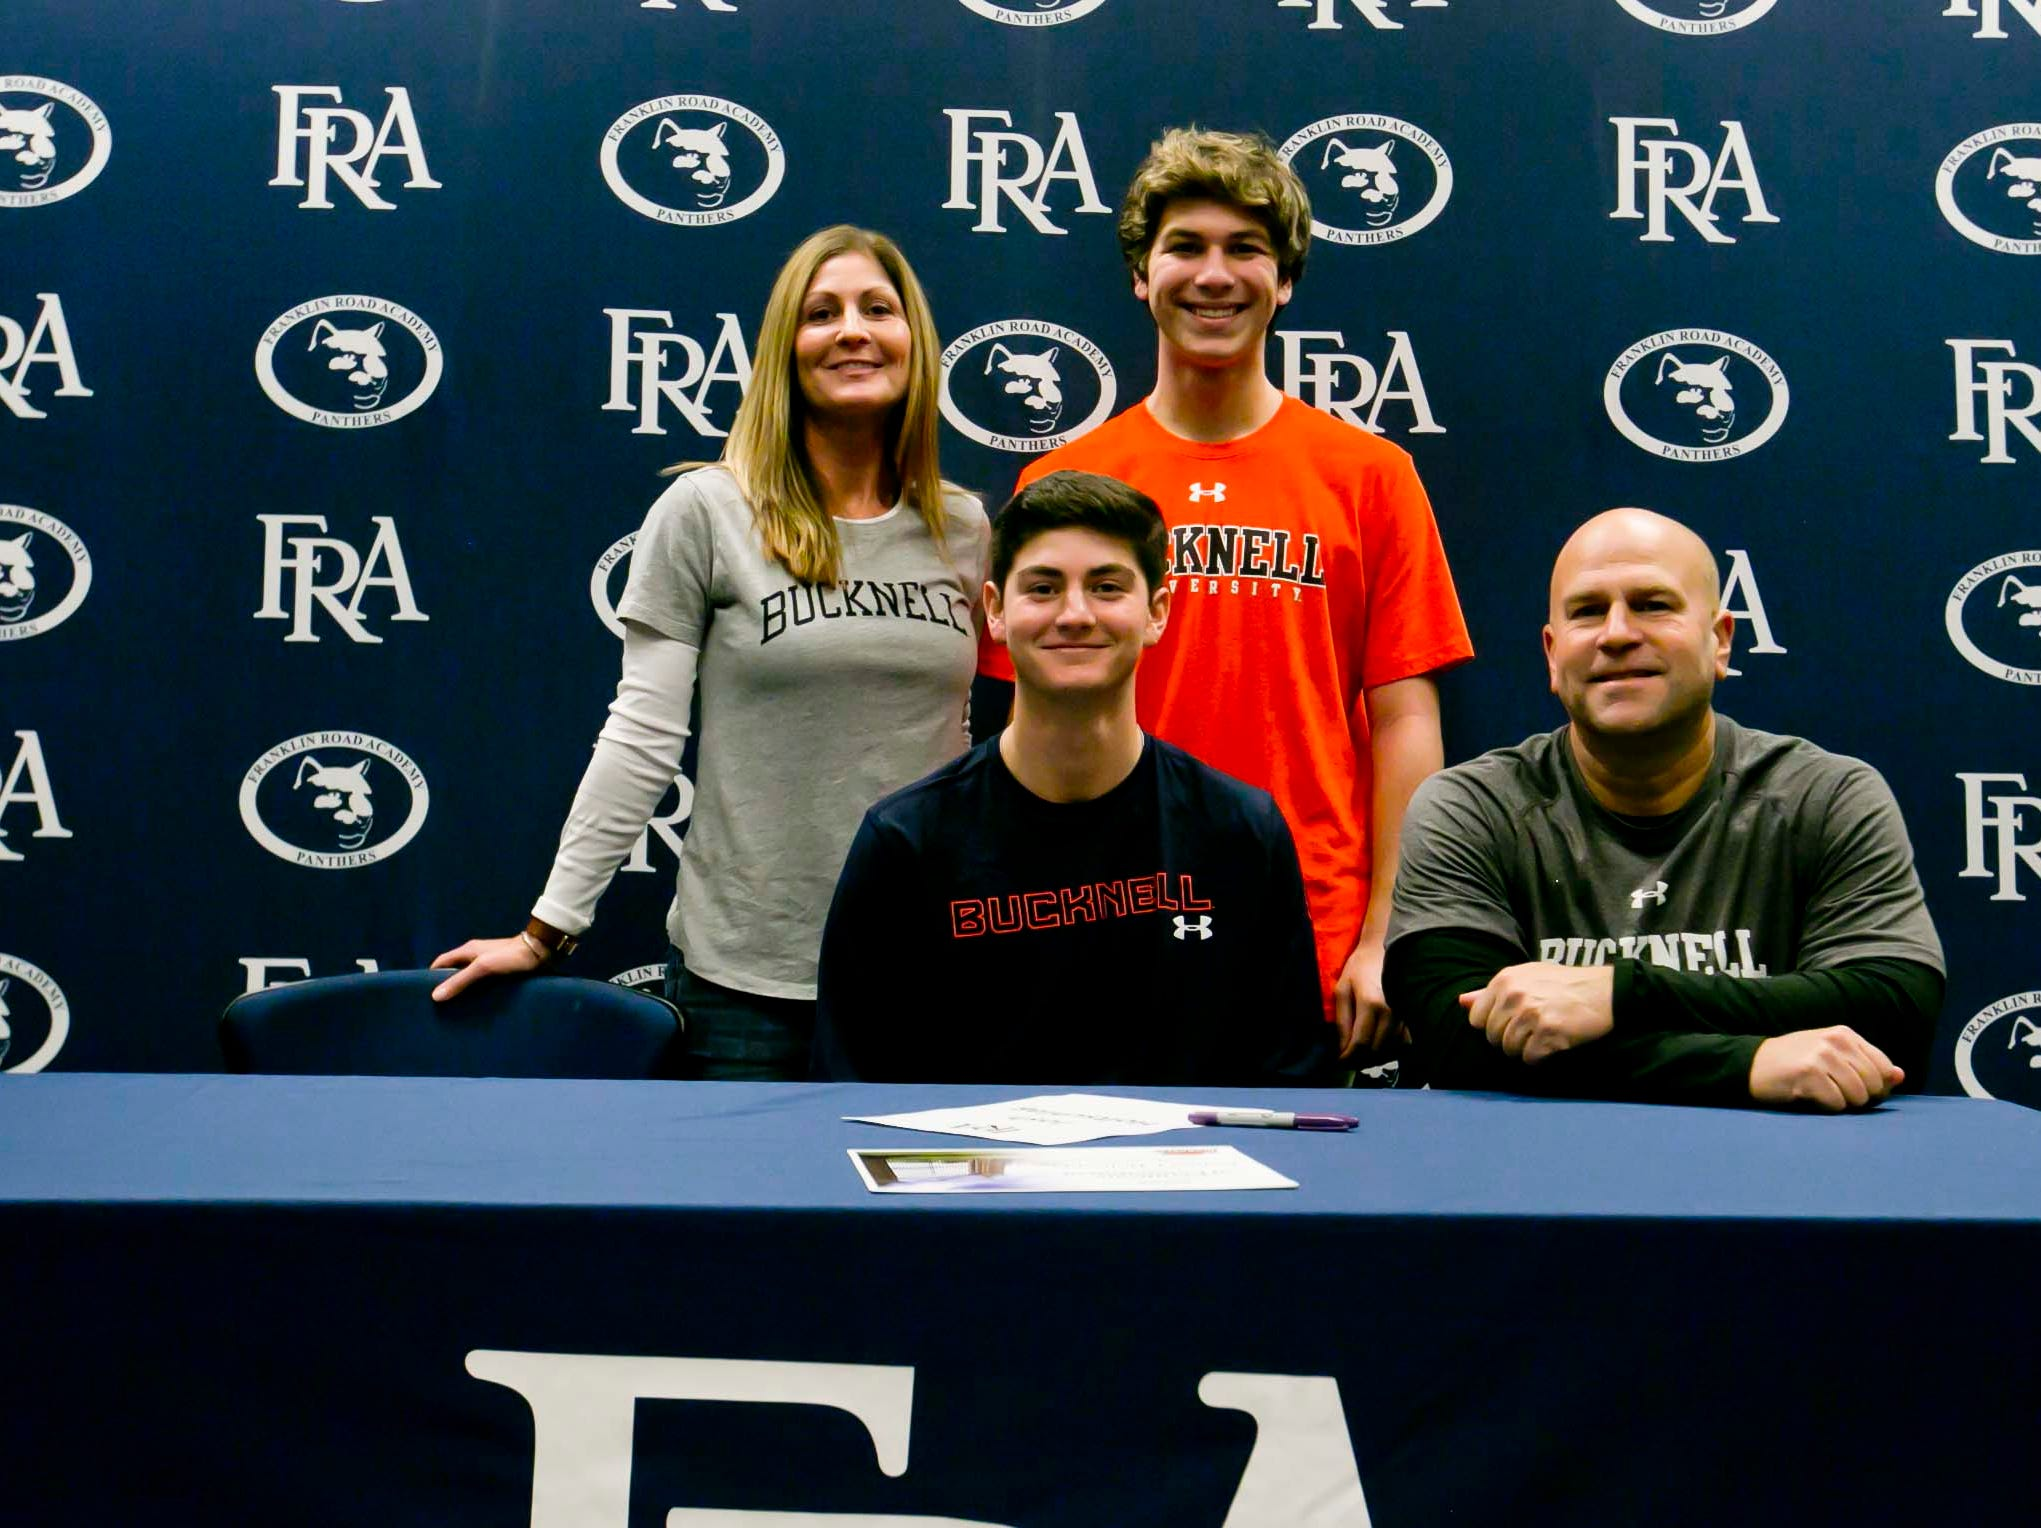 FRA's Josh Holtschlag signed with Bucknell to play golf.